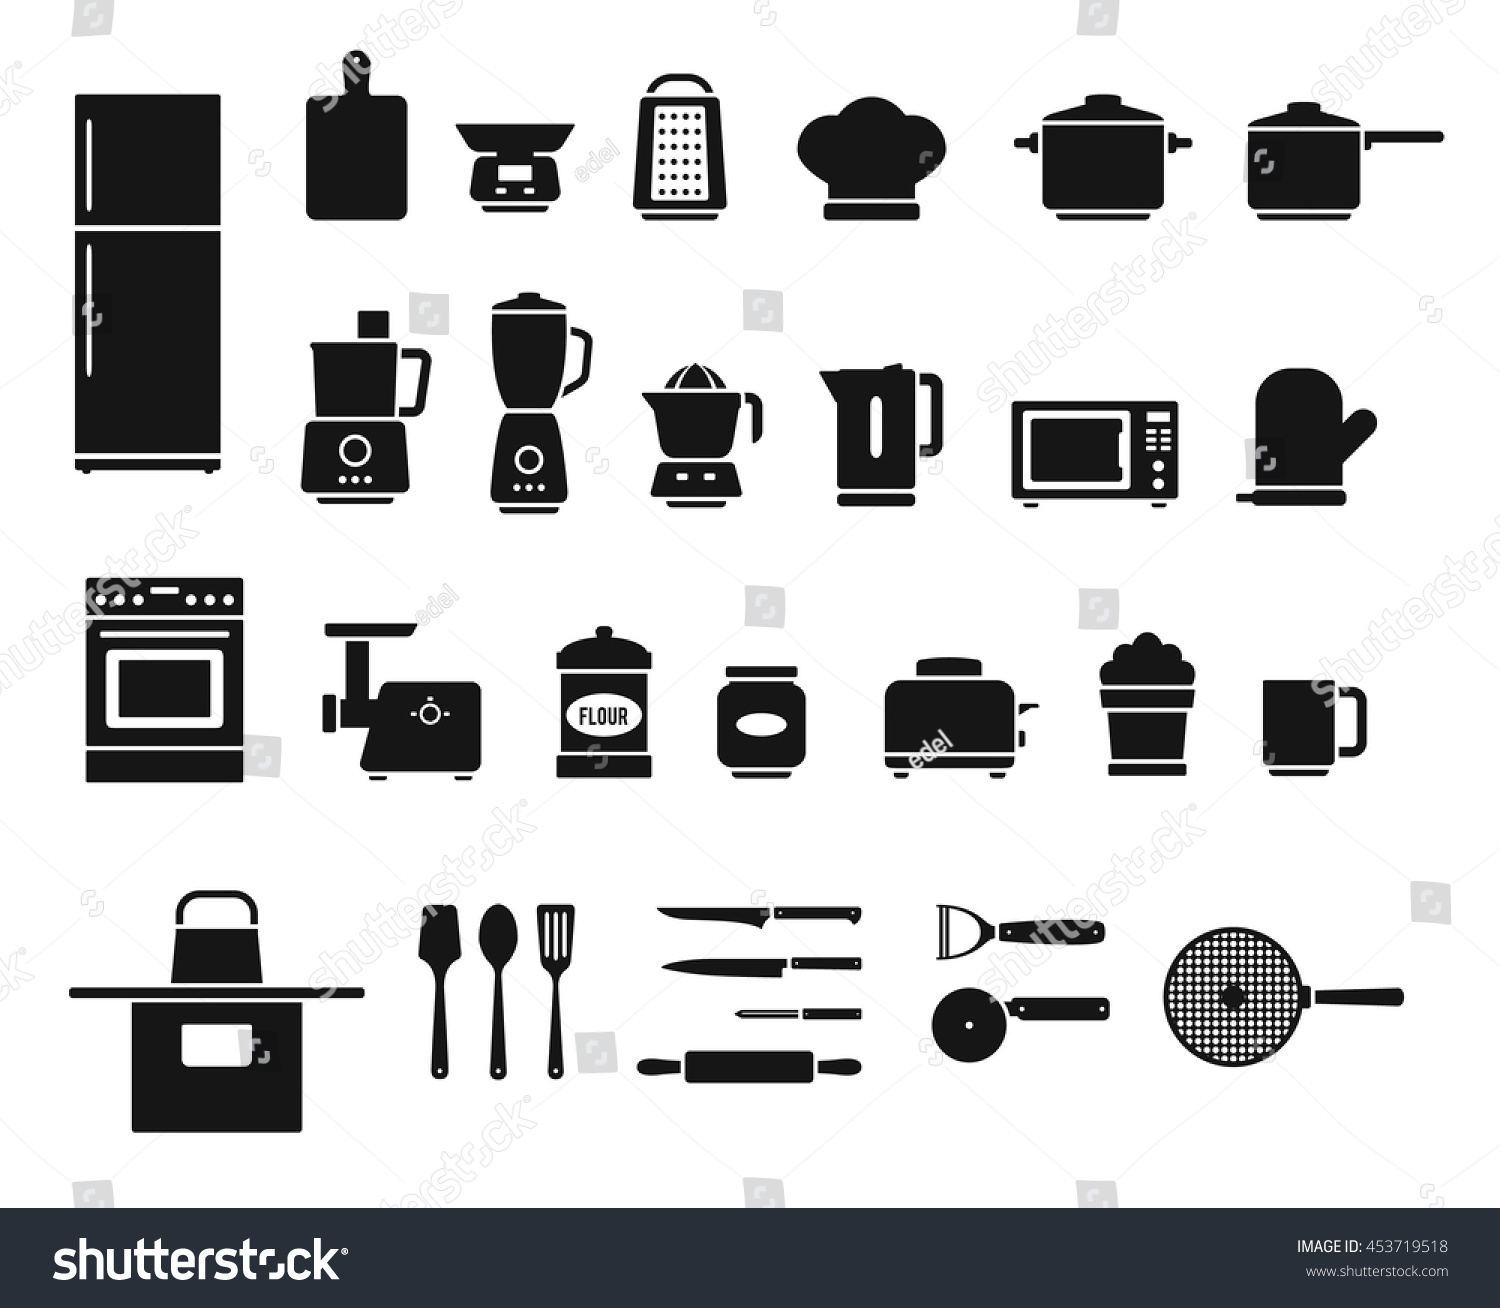 Kitchen Appliances Utensils Electrical Equipment Tools Stock Vector Royalty Free 453719518